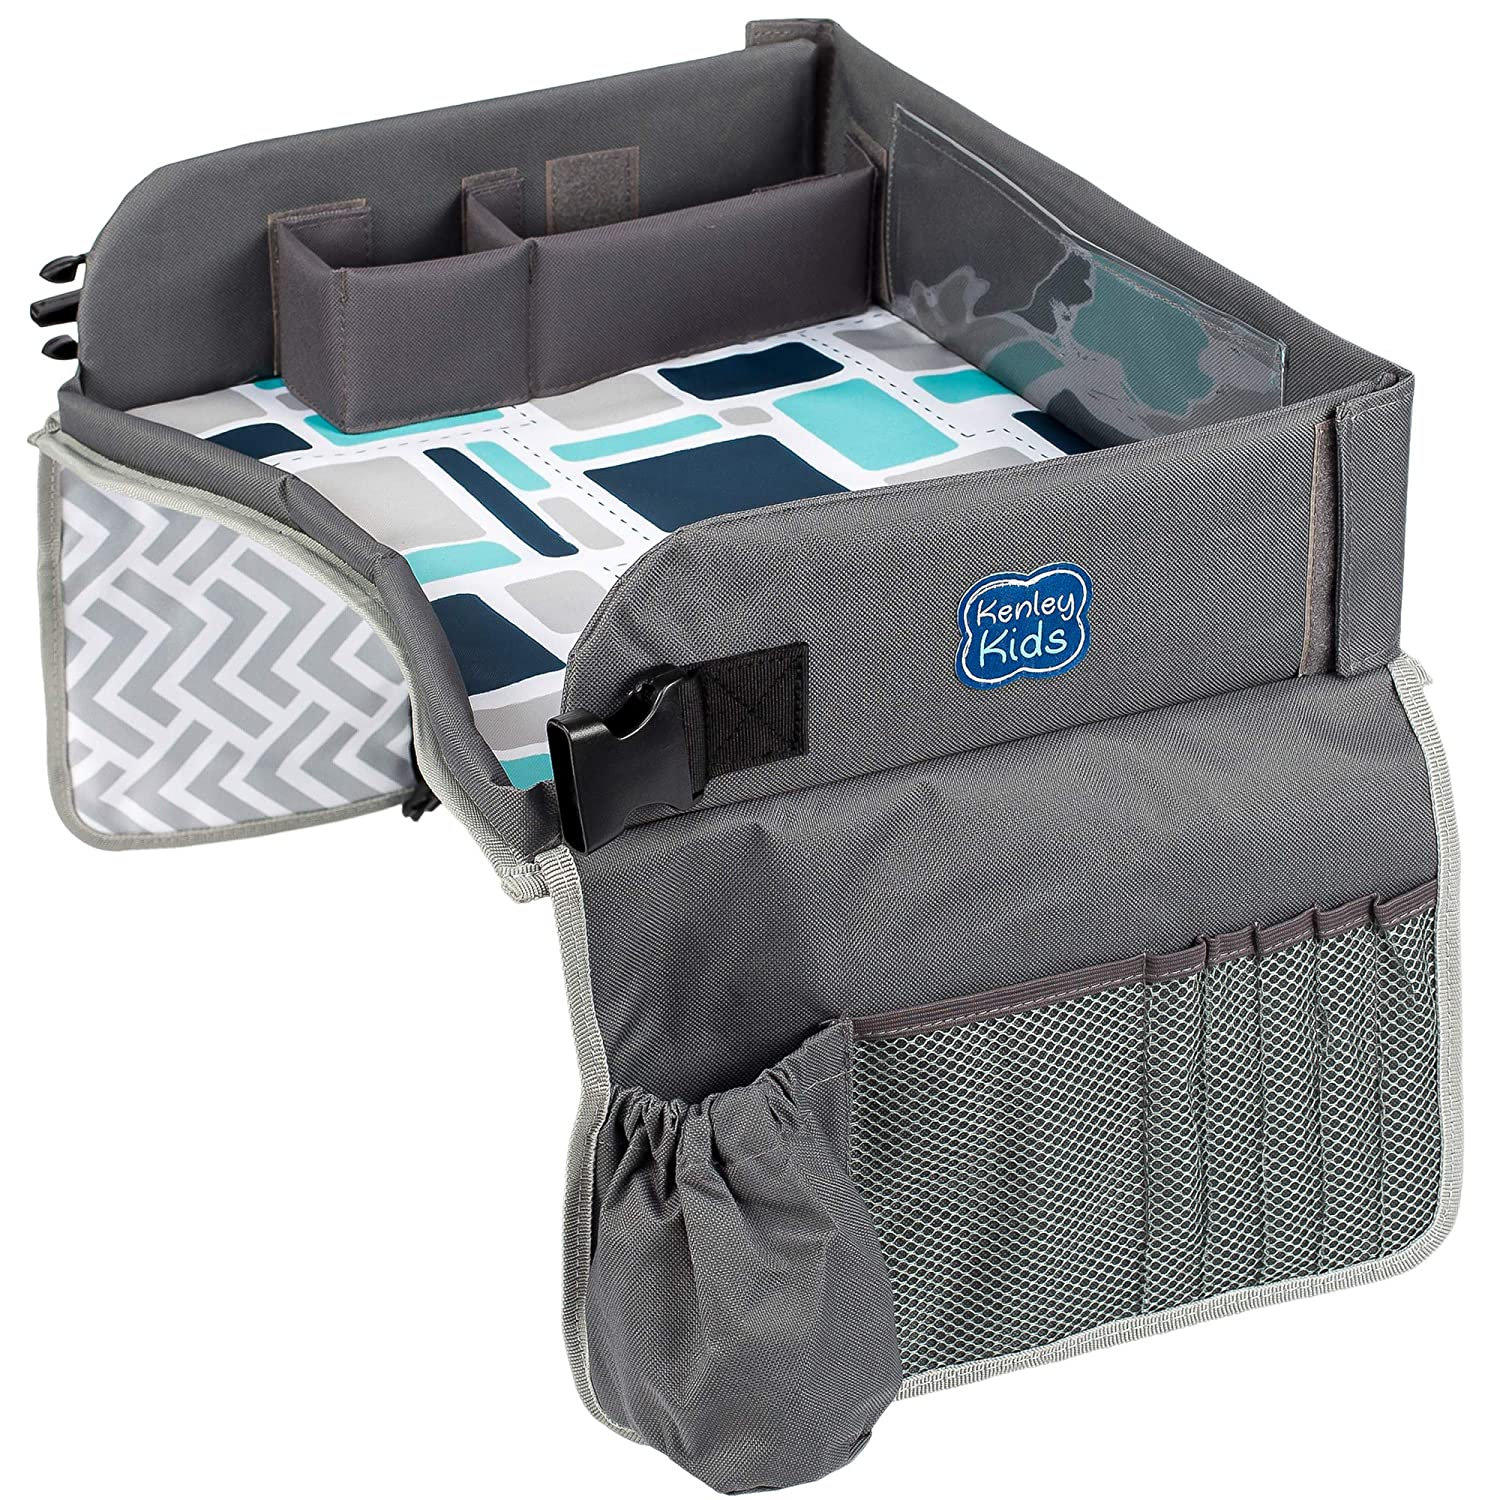 Kenley Kids Travel Tray, Toddler Car Seat Lap Tray